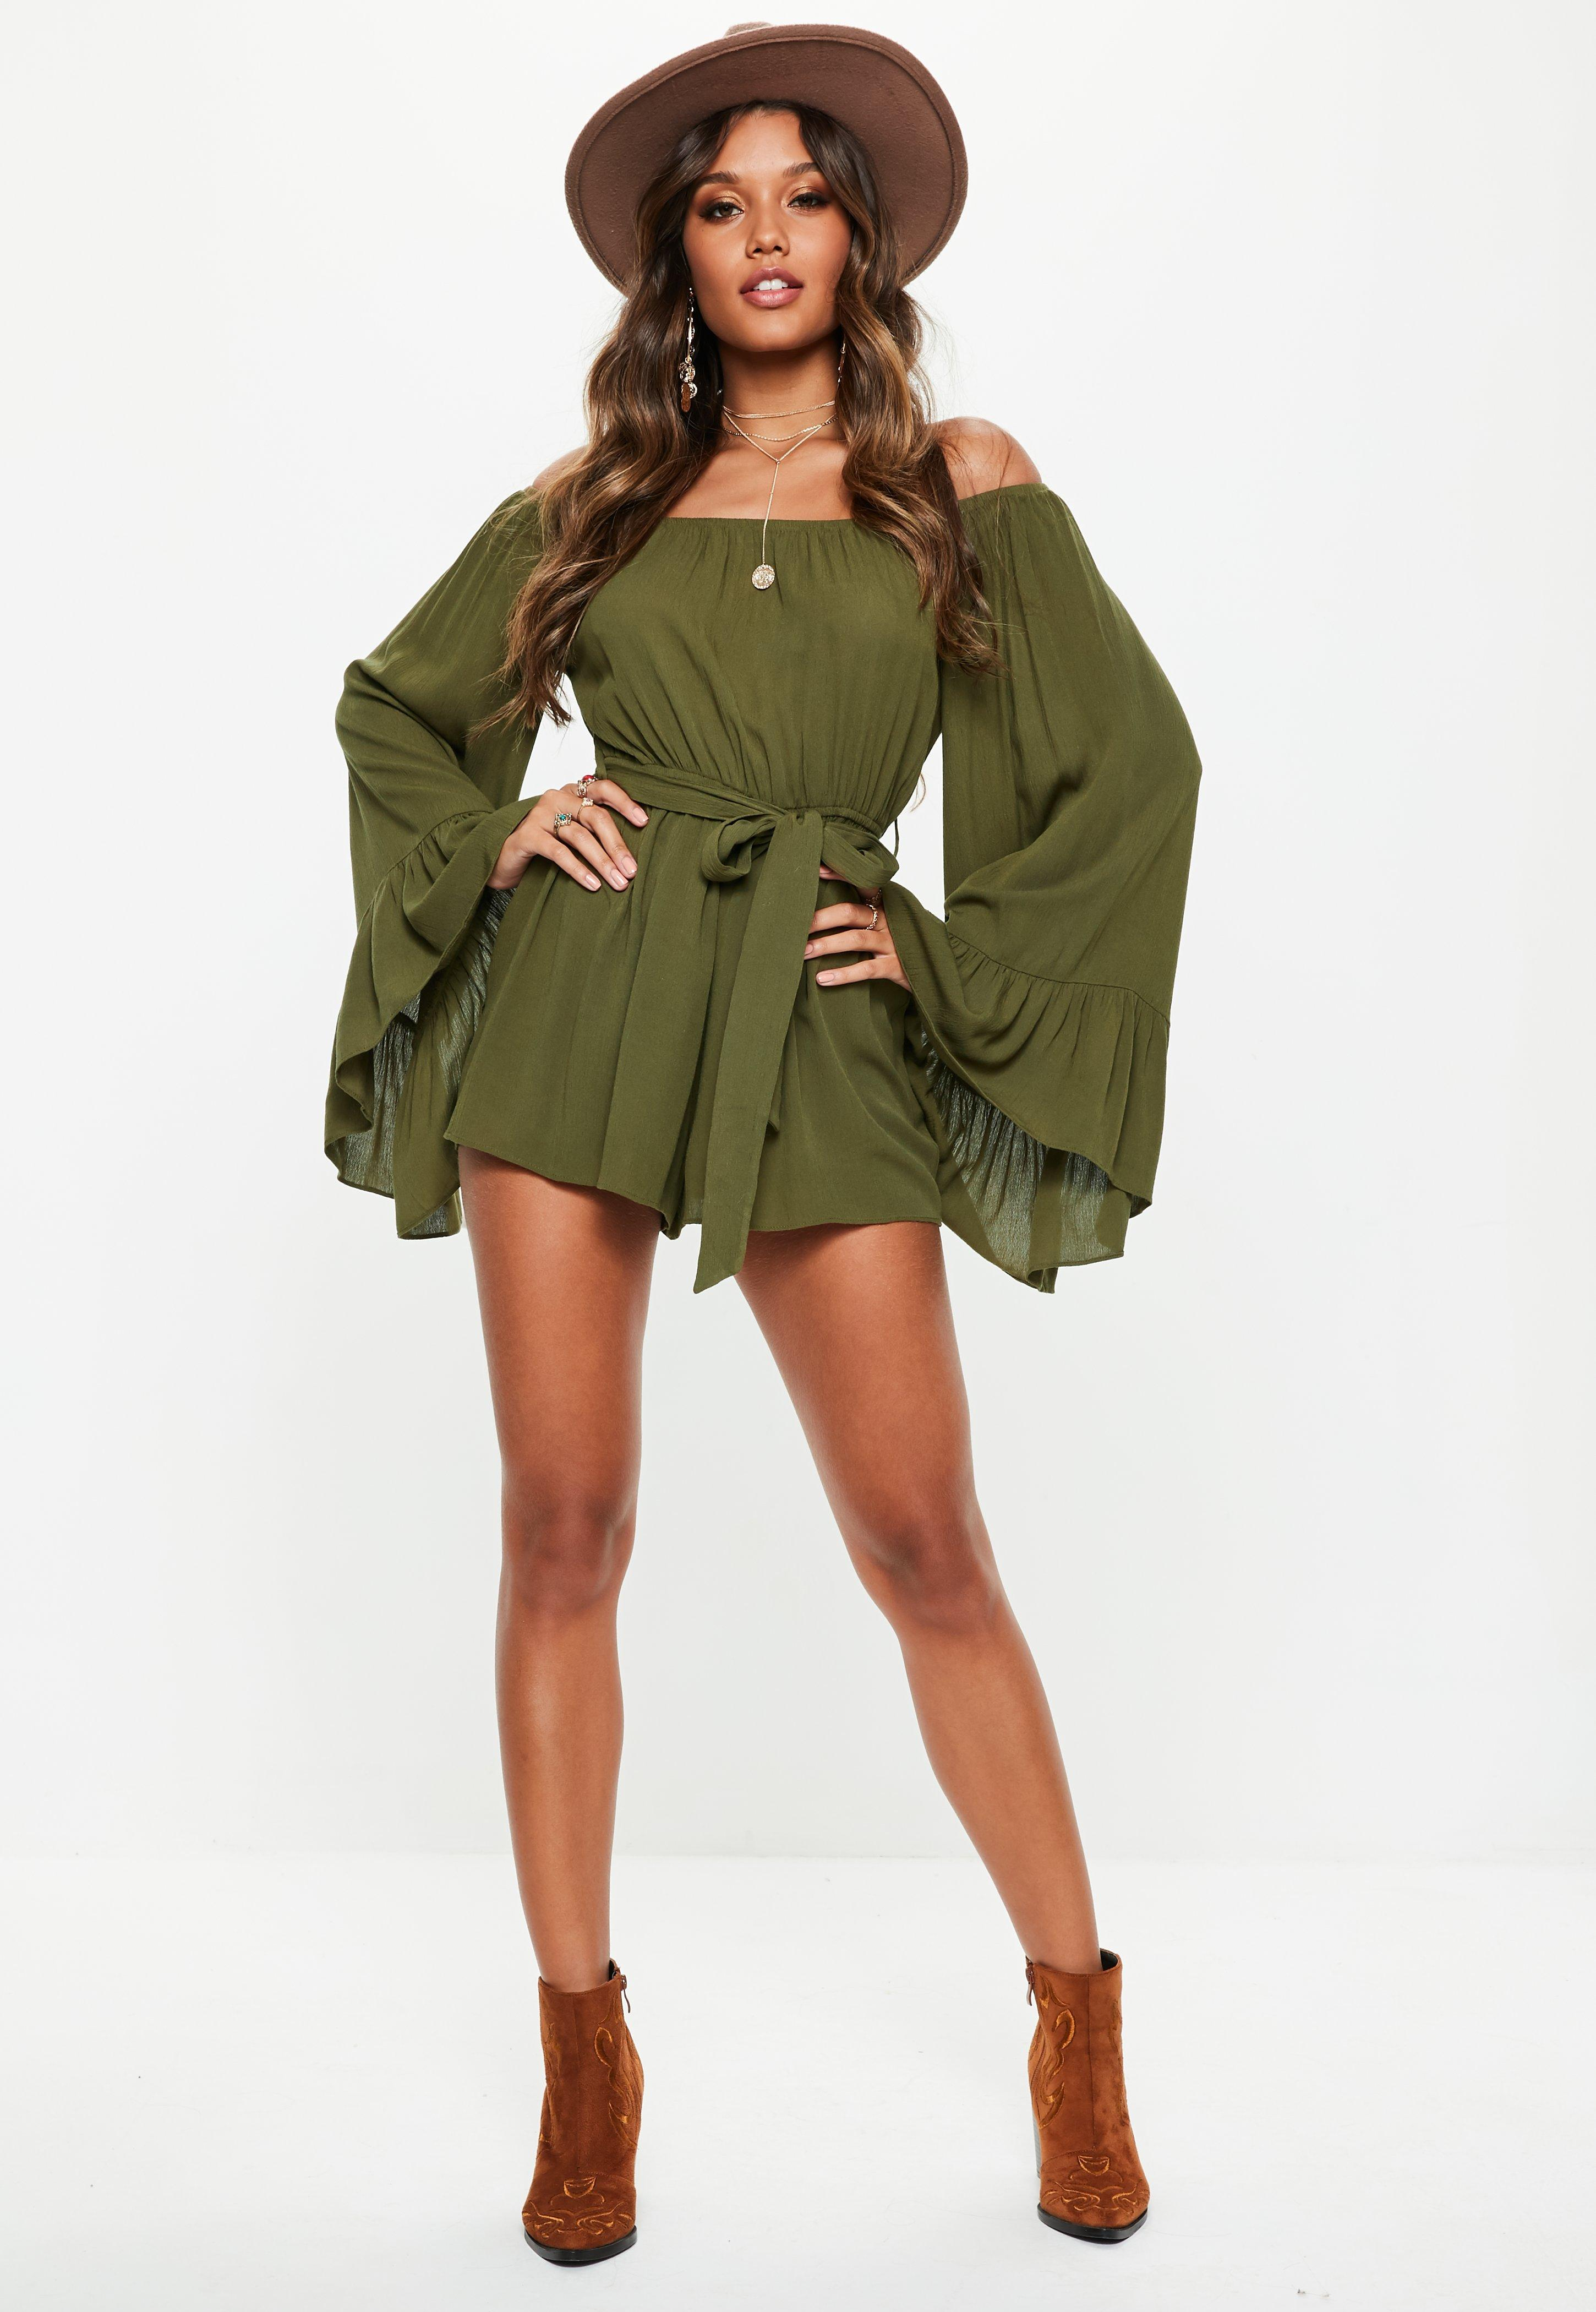 e51821ed012 Lyst - Missguided Khaki Flare Sleeve Bardot Playsuit in Green